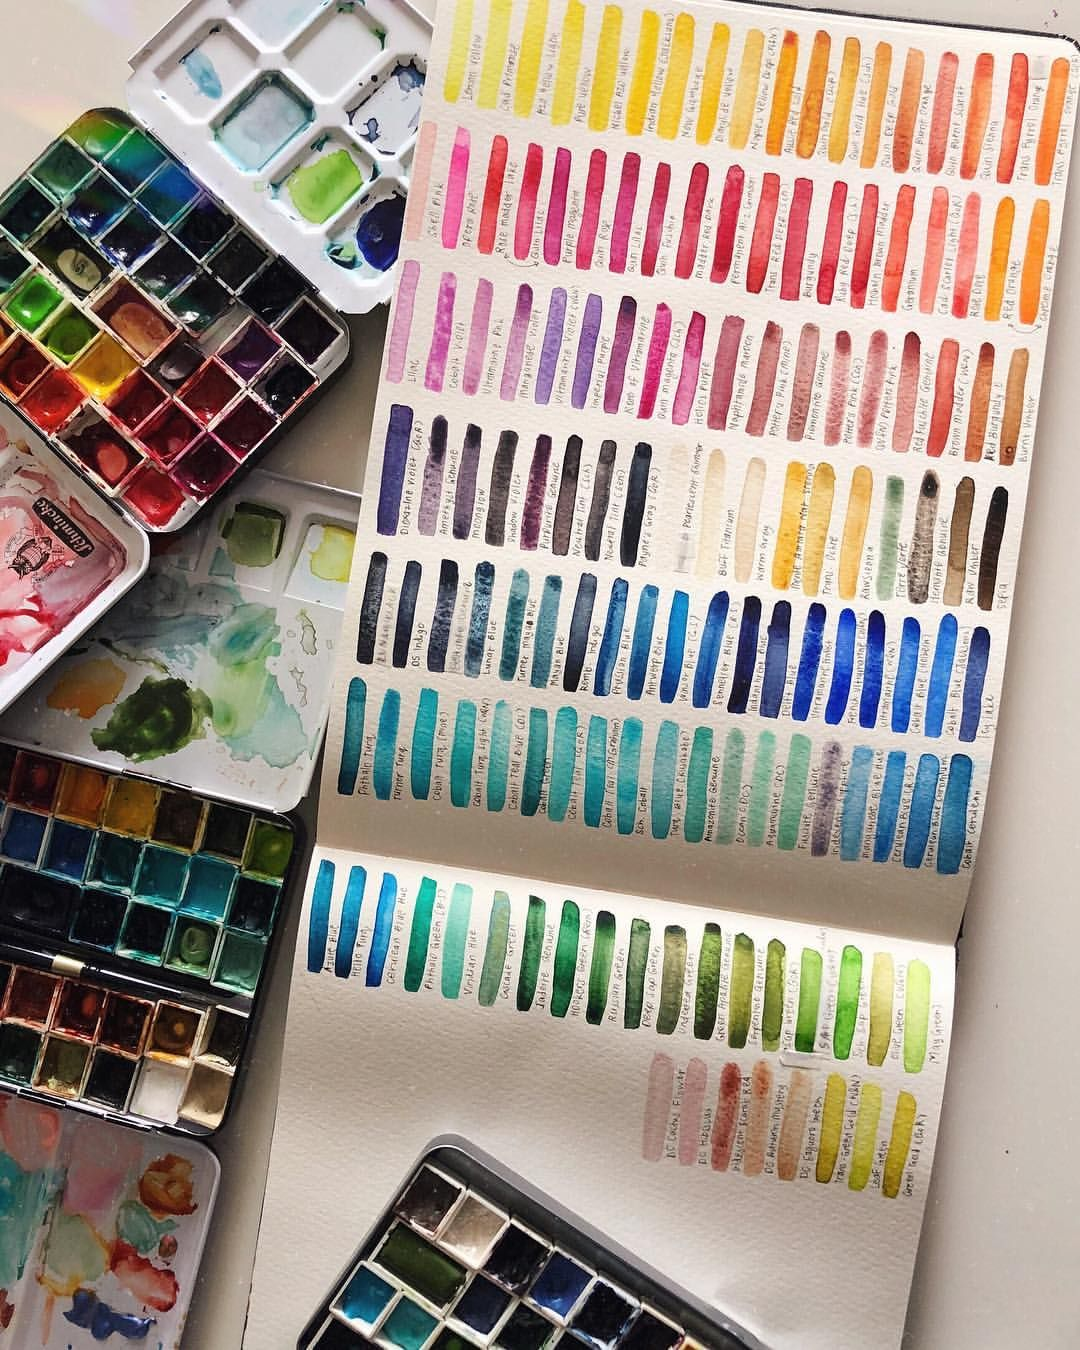 A Swatchlist Of Almost All My Watercolour Paints I Could Never